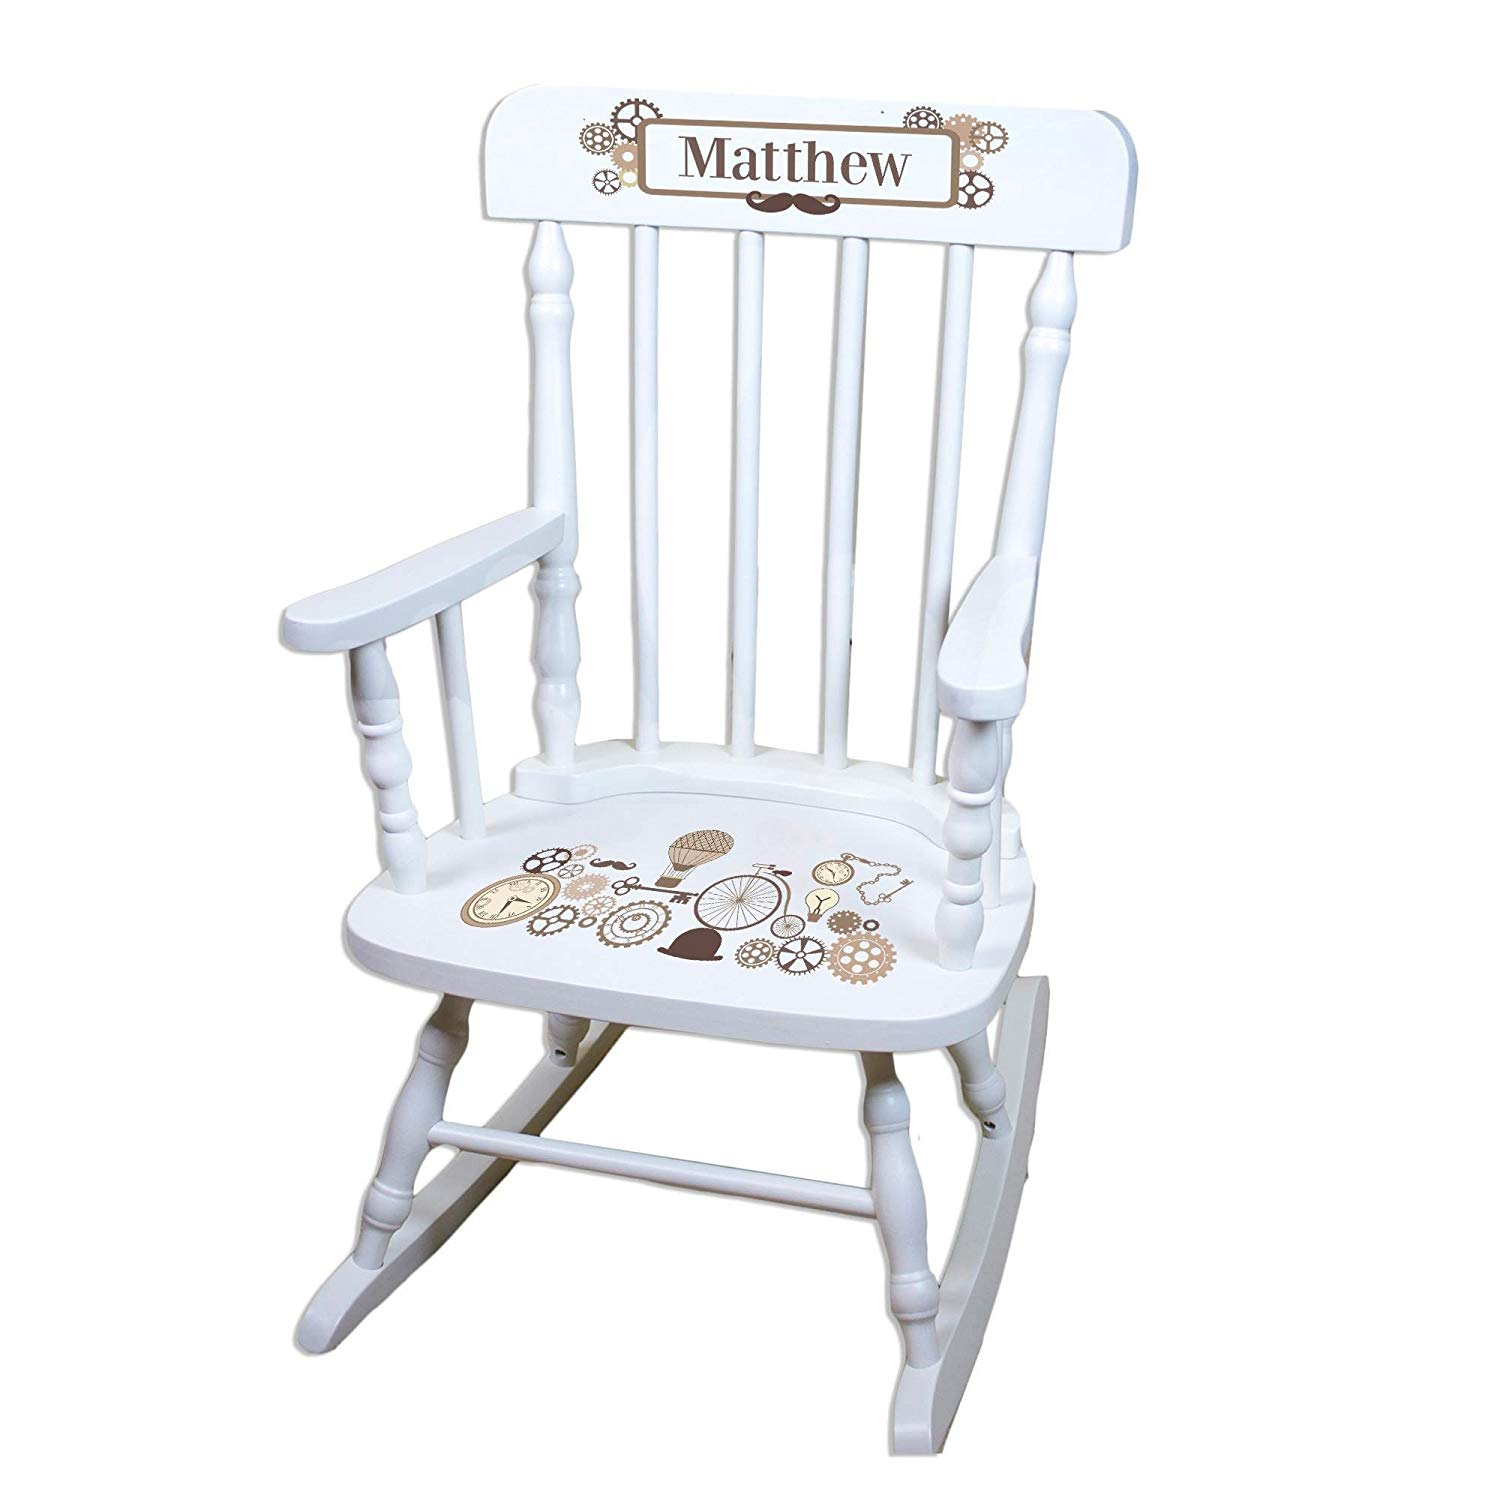 MyBambino Personalized Steampunk White Wooden Childrens Rocking Chair